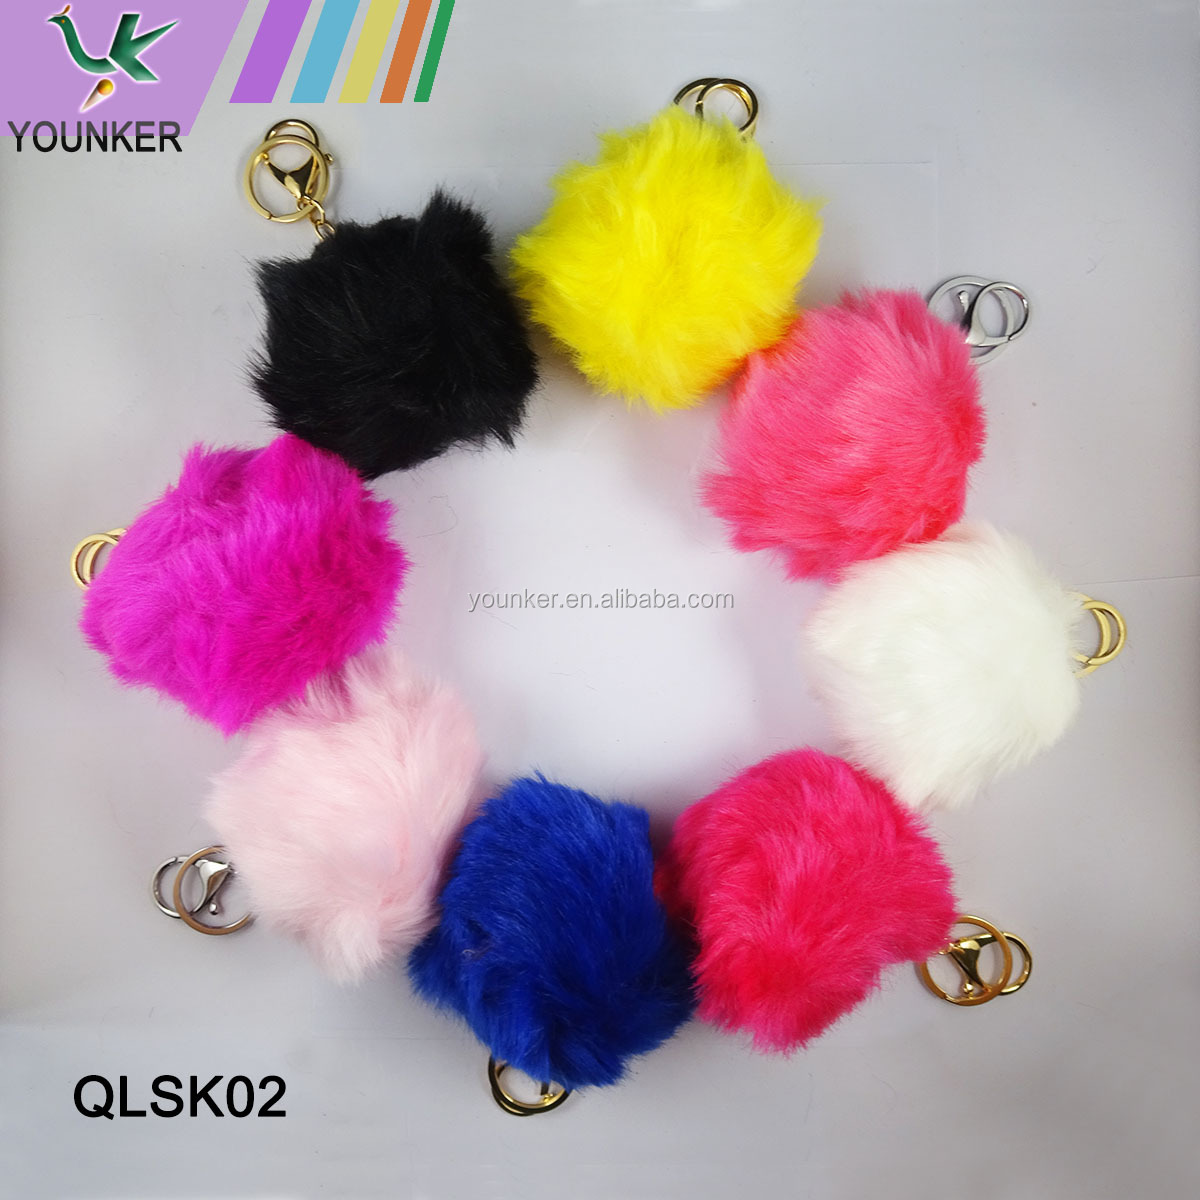 New Design Wholesale Faux Rabbit Fur Ever Pom-Pom Keychain